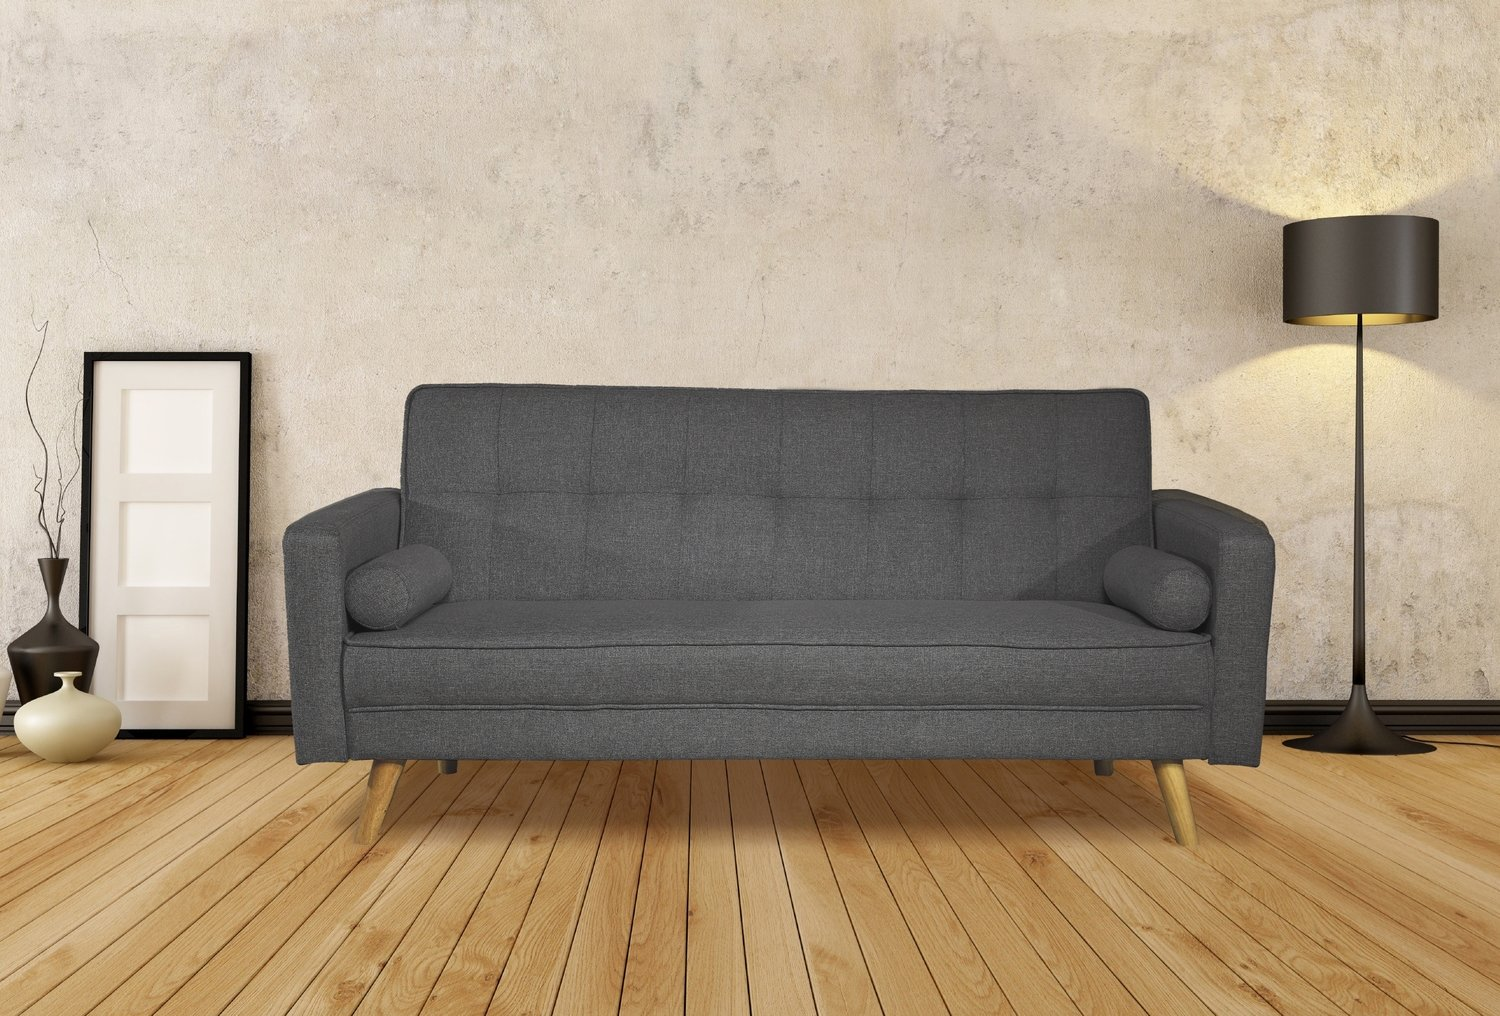 3 seater fabric sofa bed light grey or charcoal boston 3 seater fabric sofa bed light grey or charcoal amipublicfo Choice Image